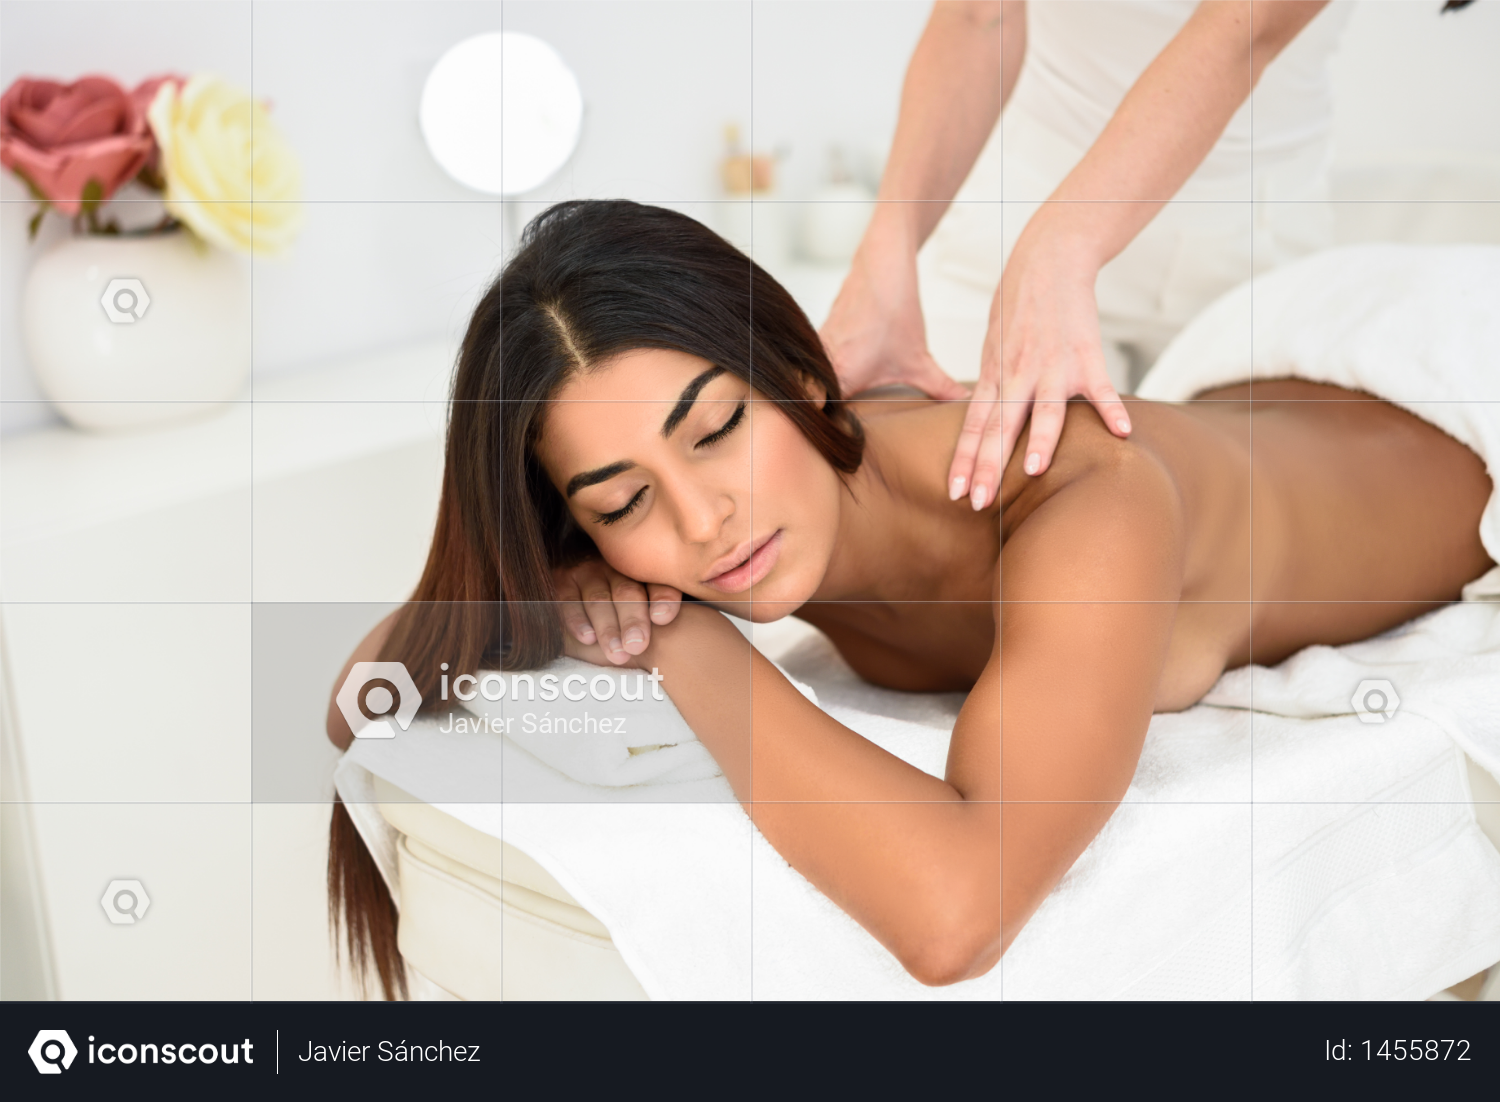 Arab woman receiving back massage in spa wellness center. Photo